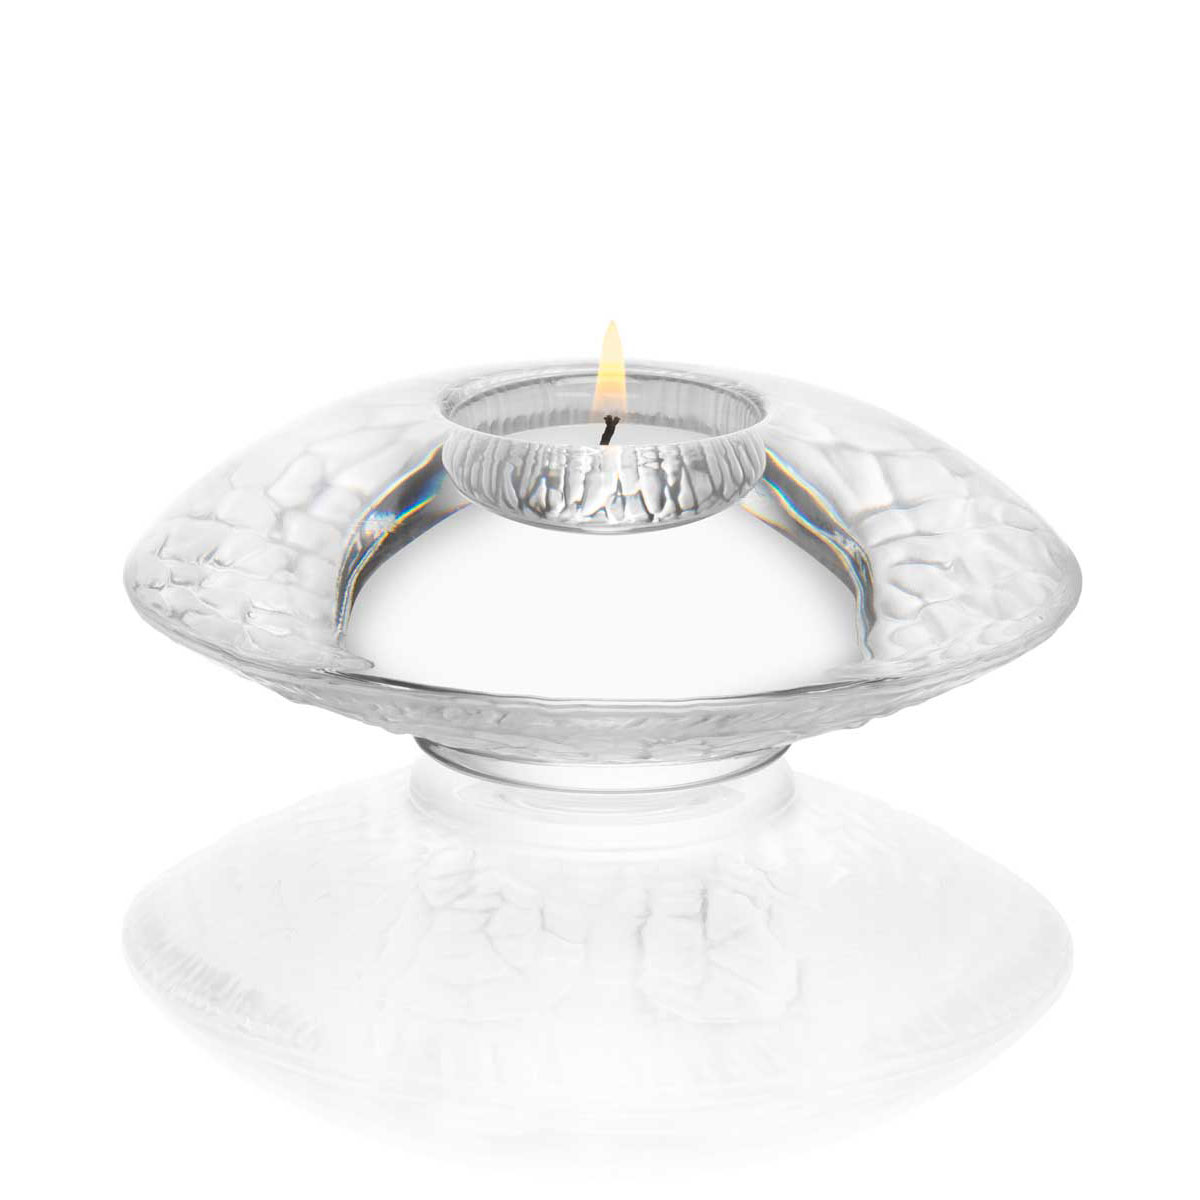 Orrefors Crystal, Discus Frosted Crystal Votive, Single